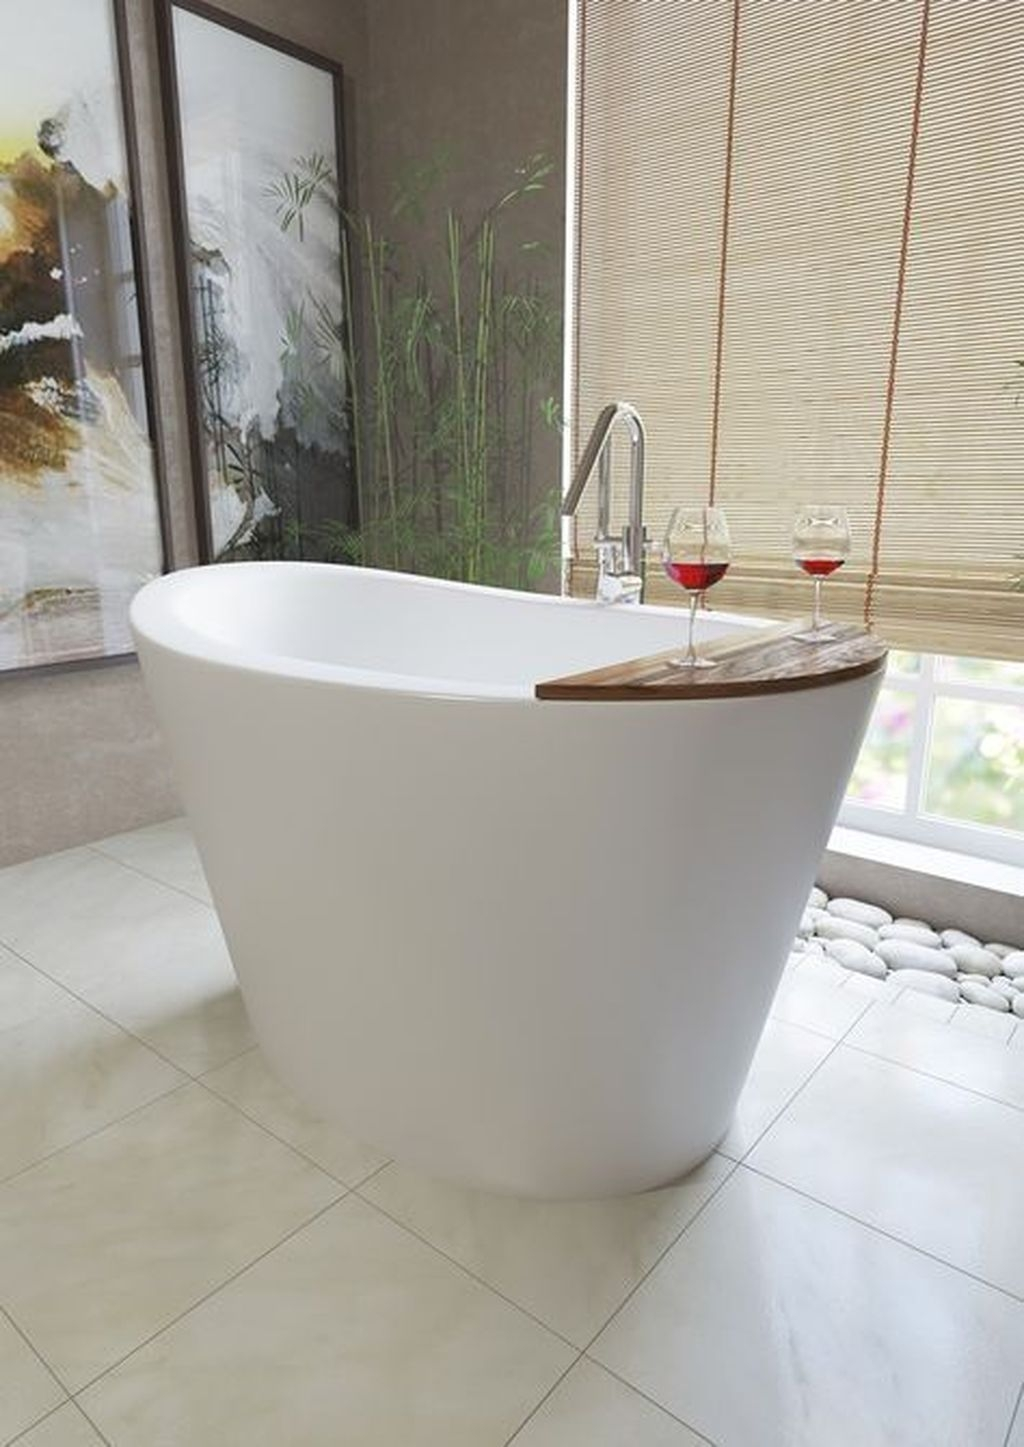 Captivating Bathtub Designs Ideas You Must See19